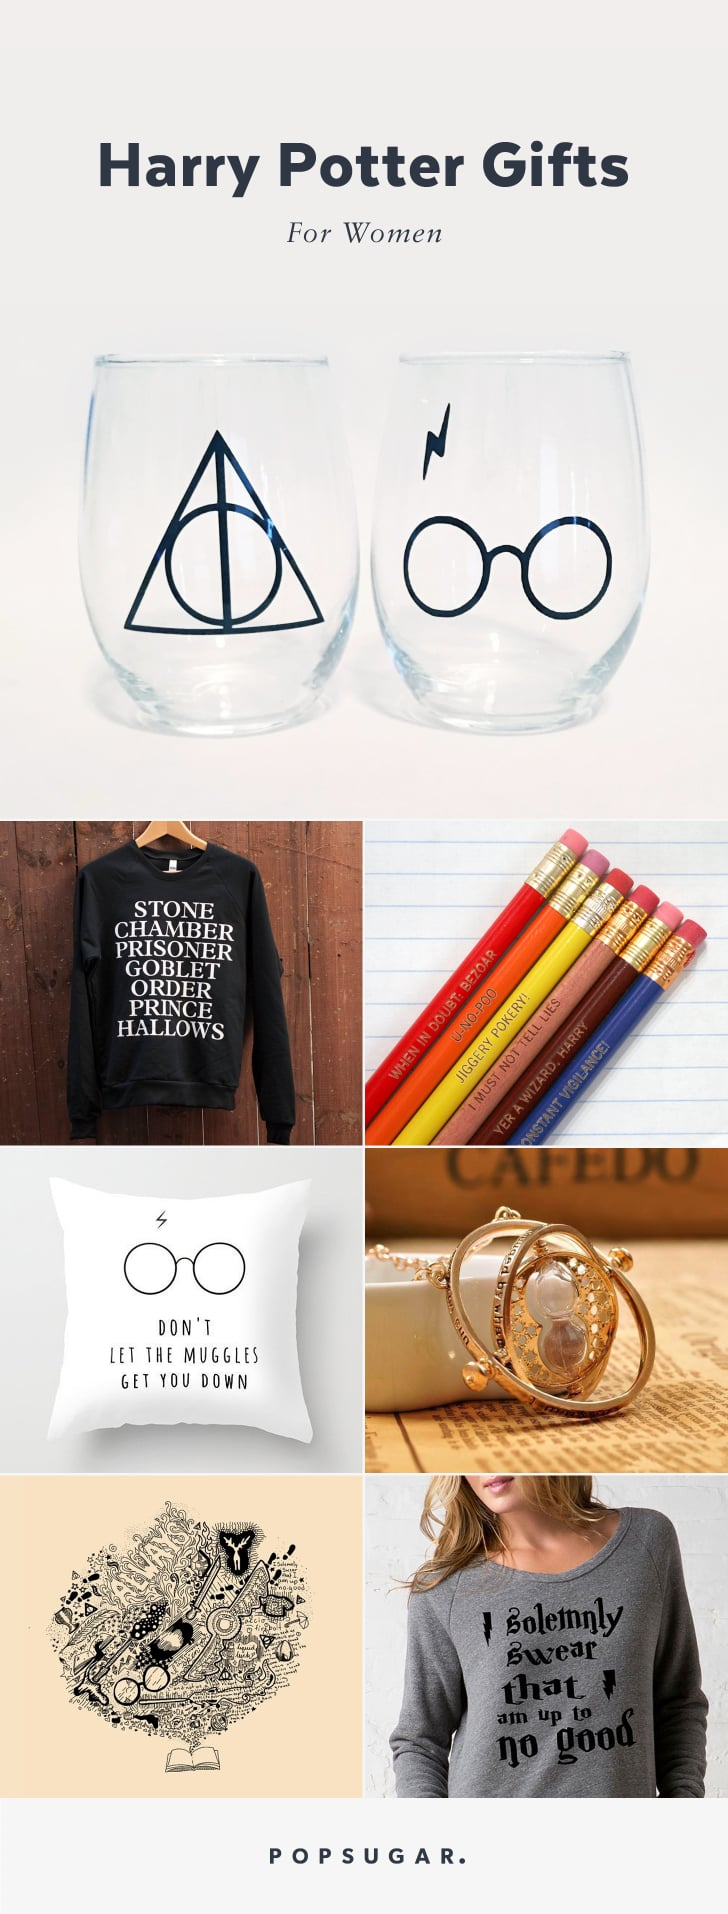 32 Spell-Binding Harry Potter Gifts For Every Fan on Earth